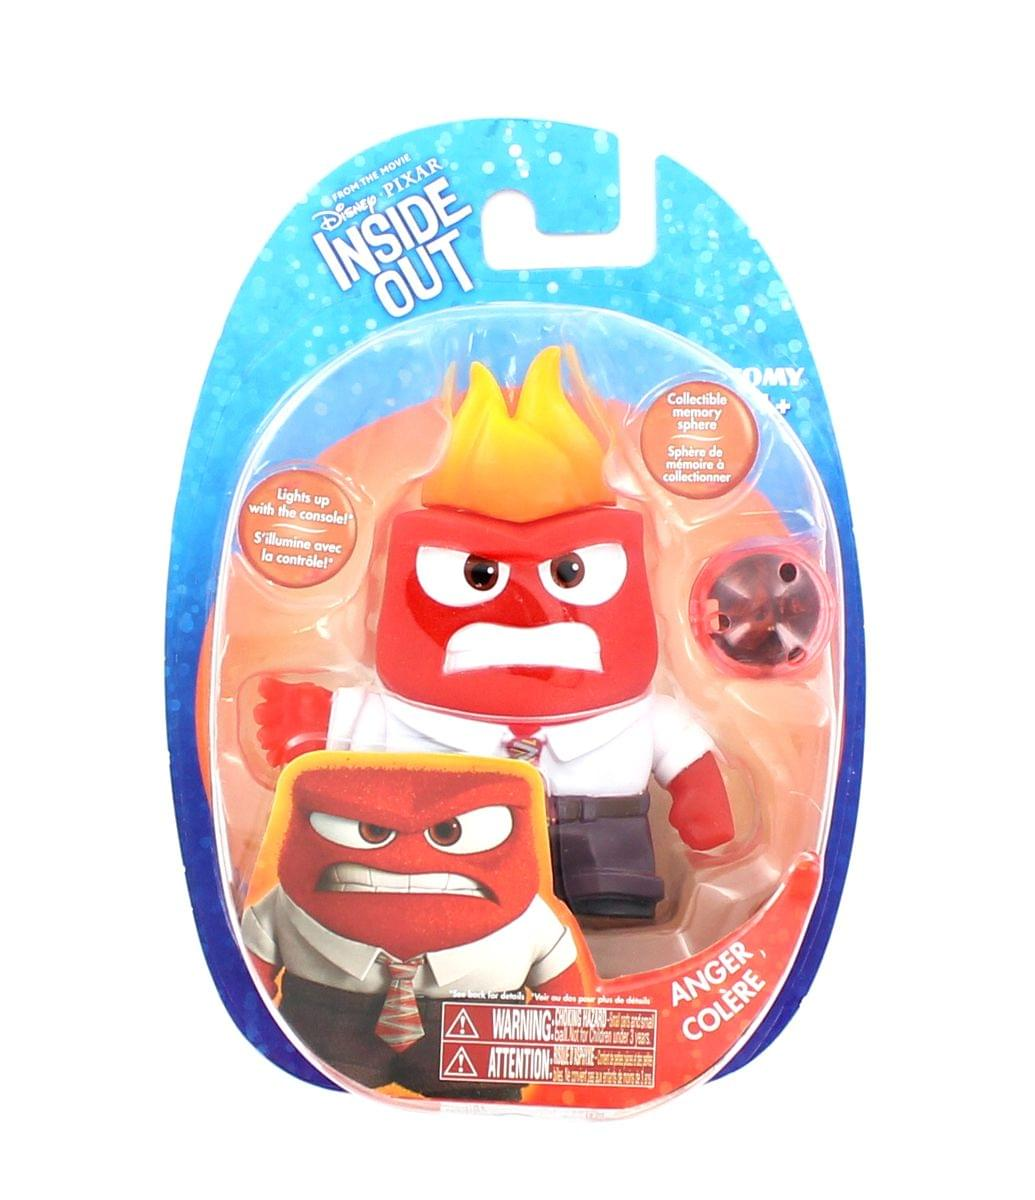 Disney Pixar S Inside Out Anger Small Action Figure